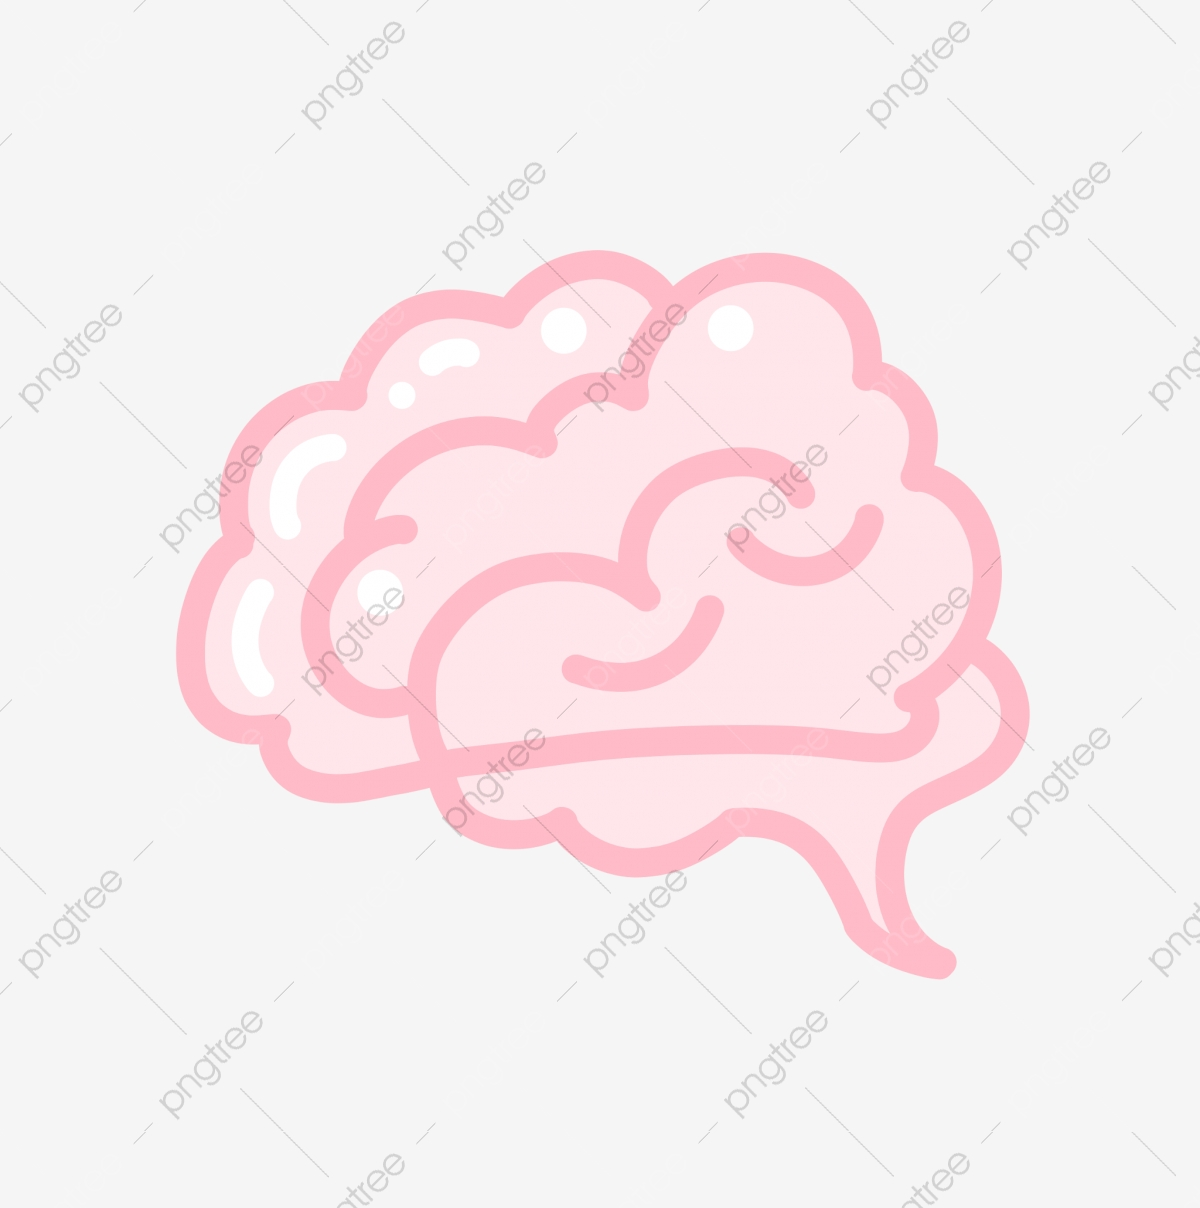 Clipart Free Stock Heart Big Image Png - Clip Art Of A Brain - Free  Transparent PNG Download - PNGkey